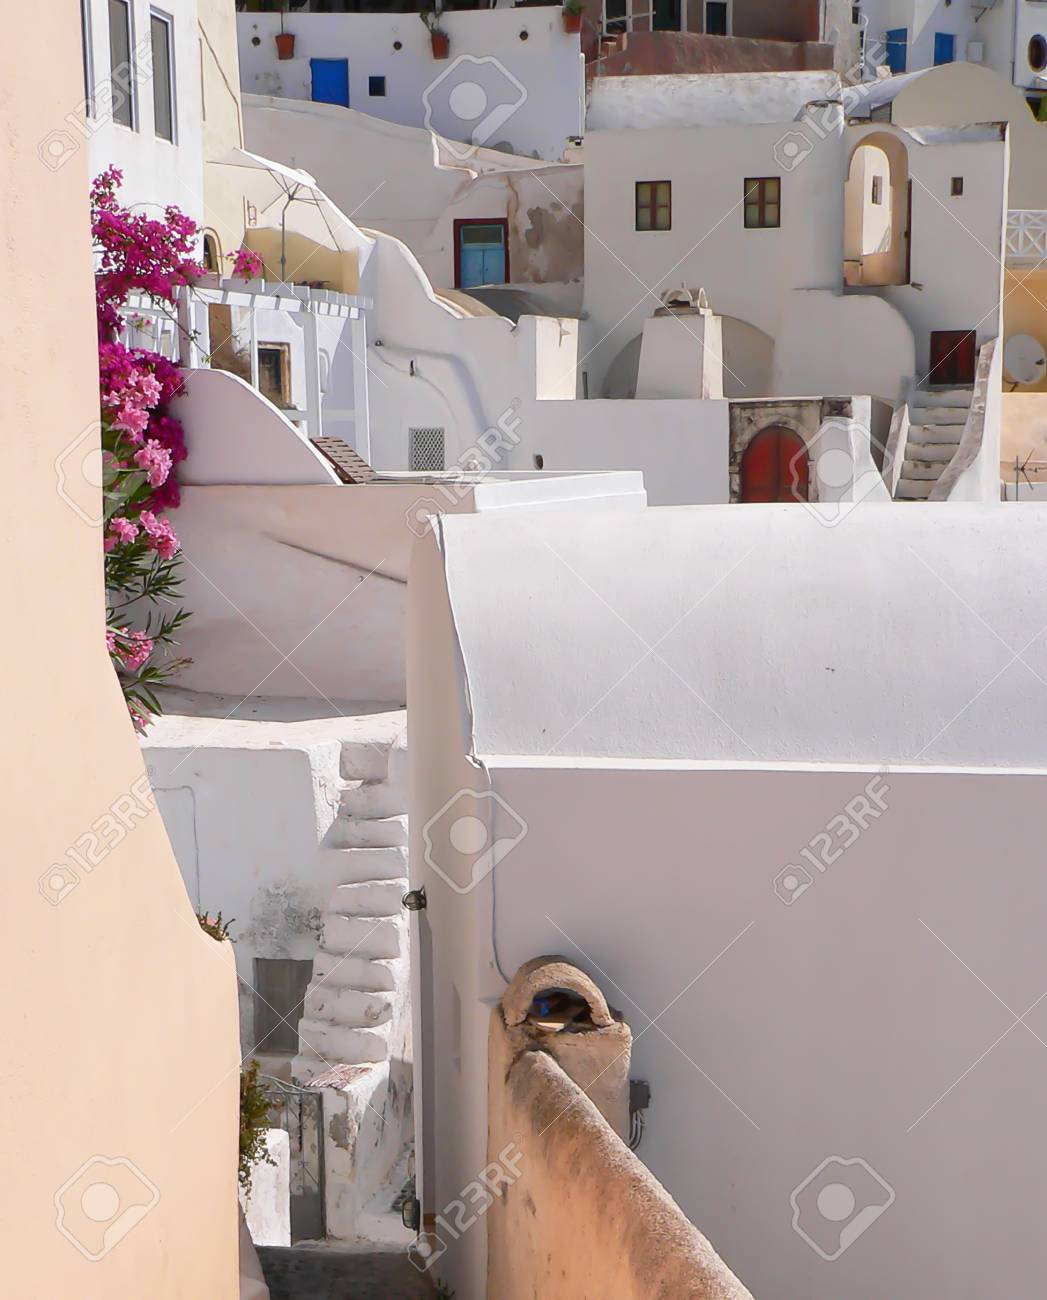 Narrow Stairs And Pathways In Steep Village In Greece Stock Photo